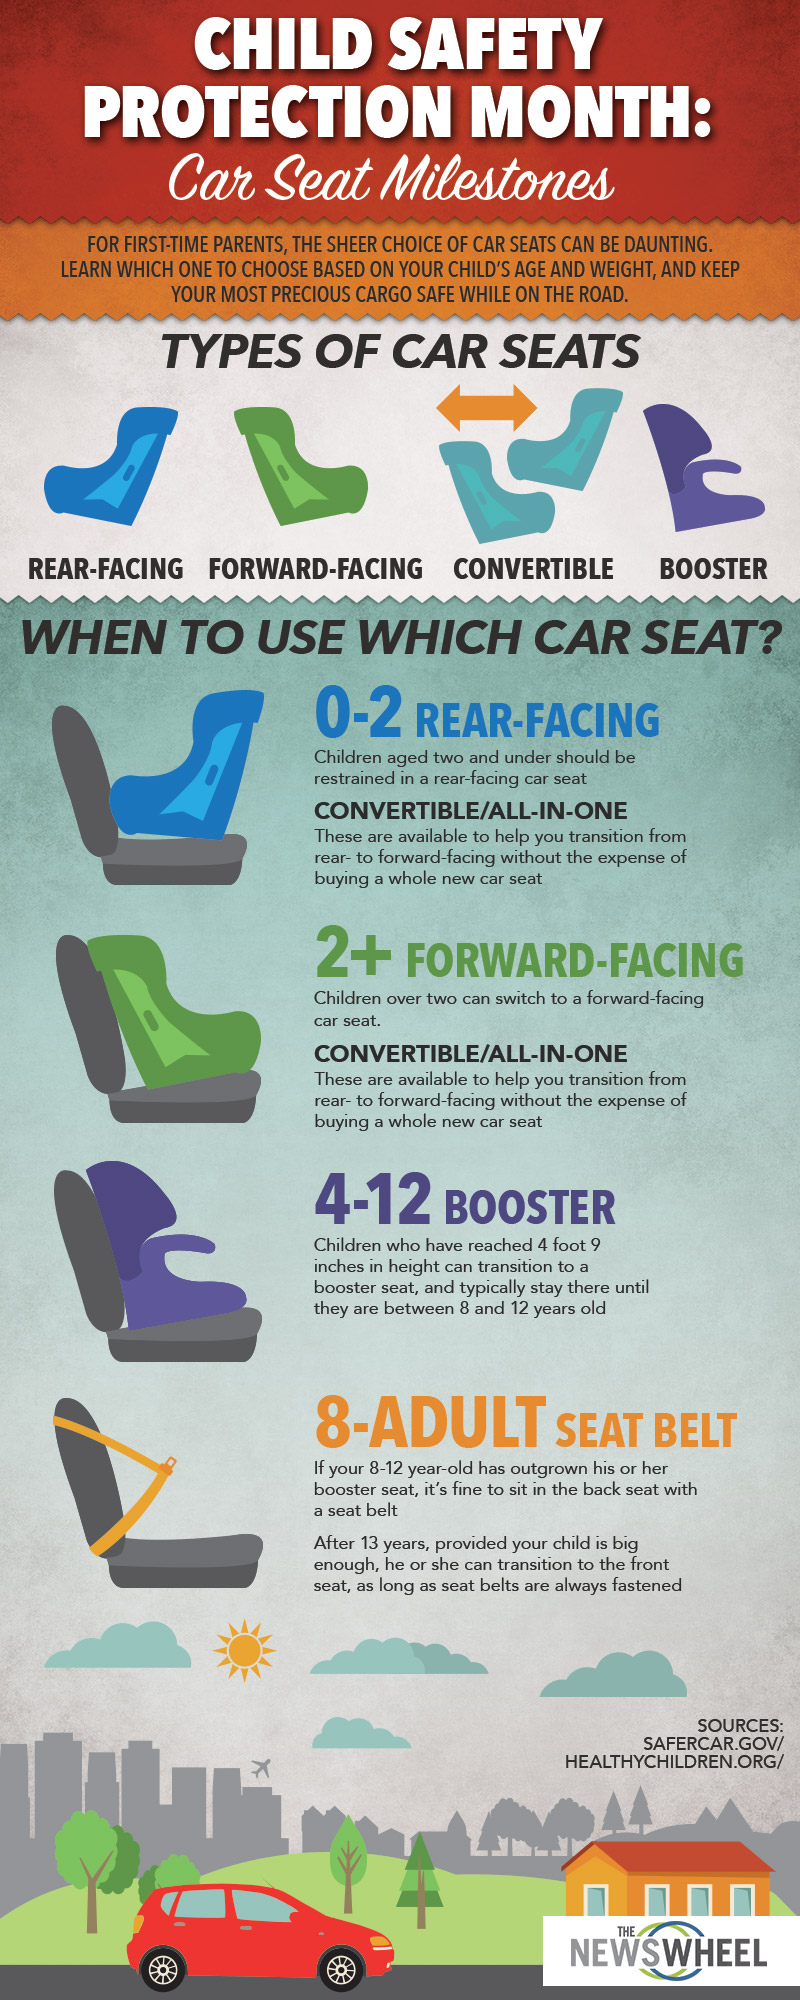 Child Safety Protection Month Car Seat Milestones